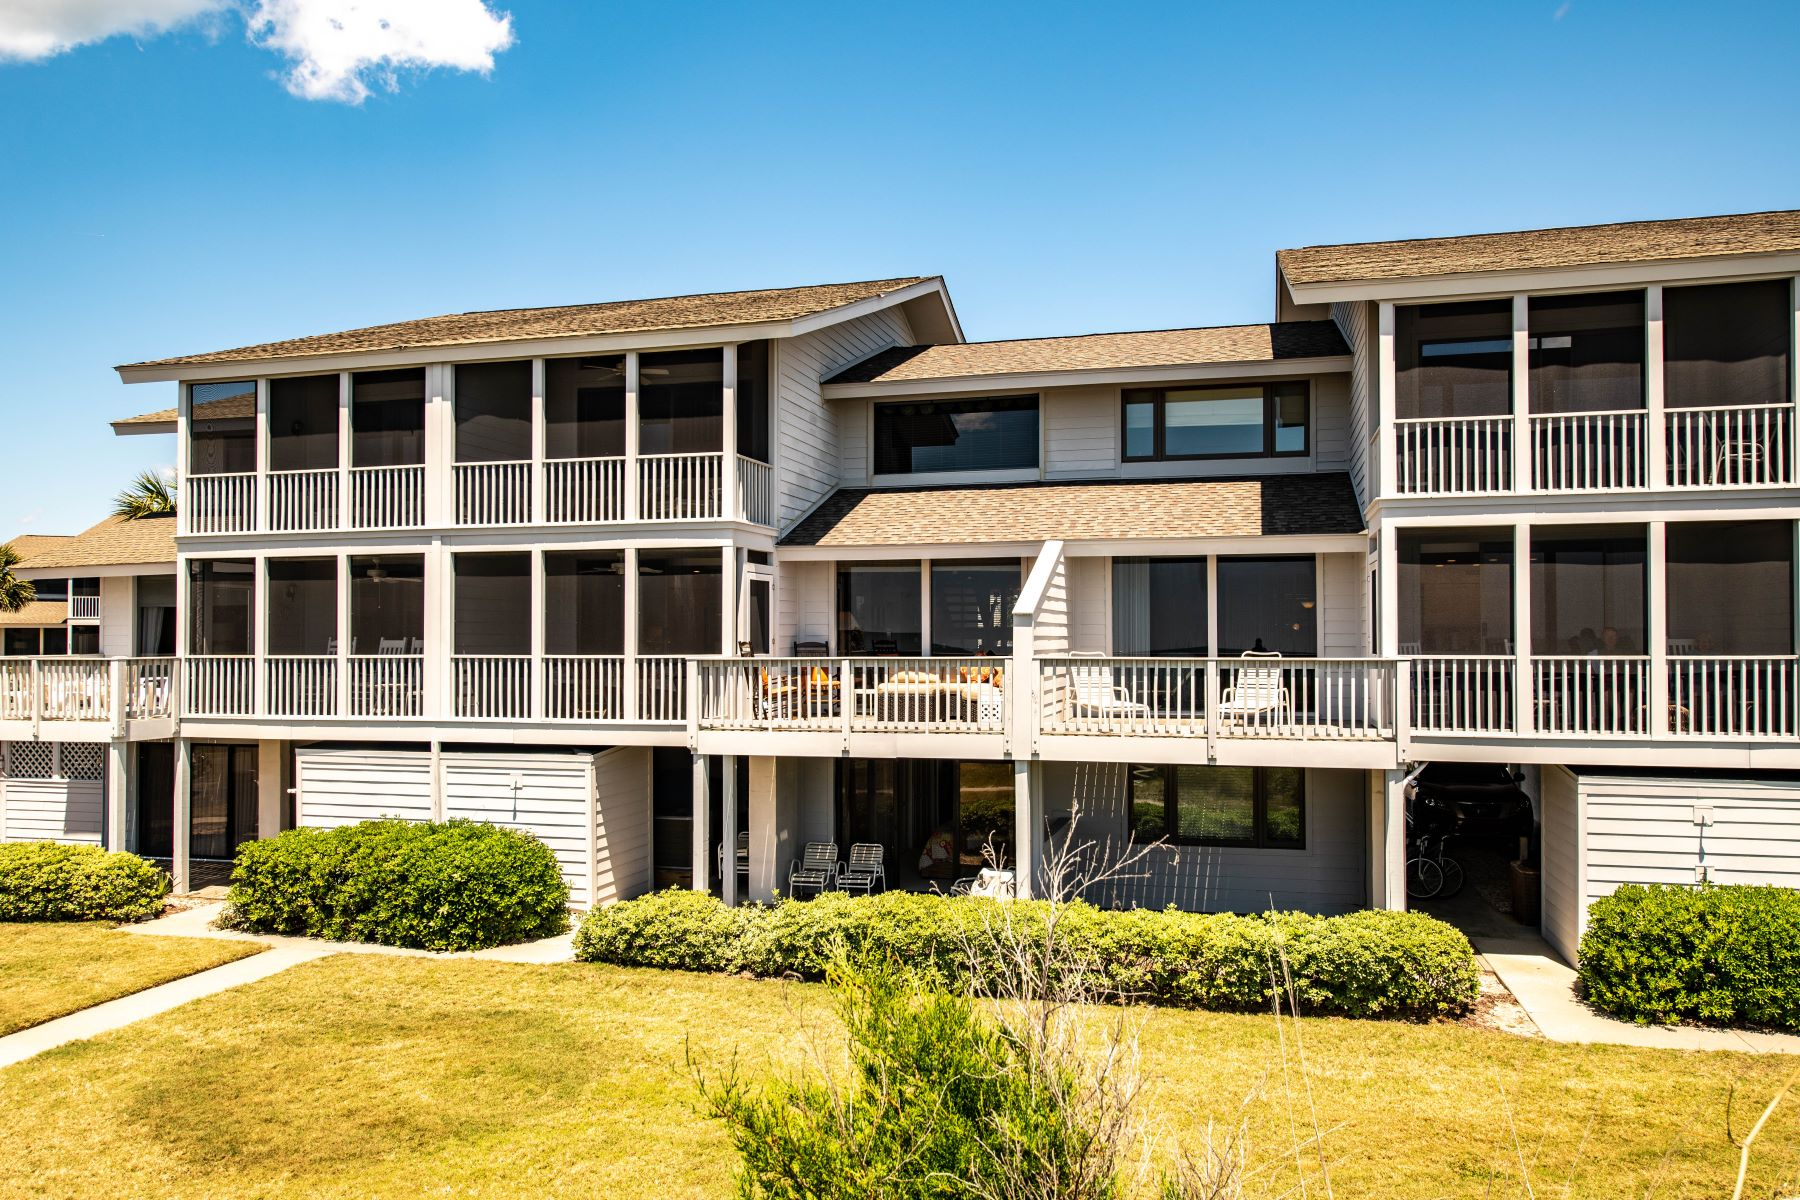 Condominiums for Sale at 671 Norris Dr., Pawleys Island, Sc, 29585 671 Norris Dr. Unit# 1C Pawleys Island, South Carolina 29585 United States